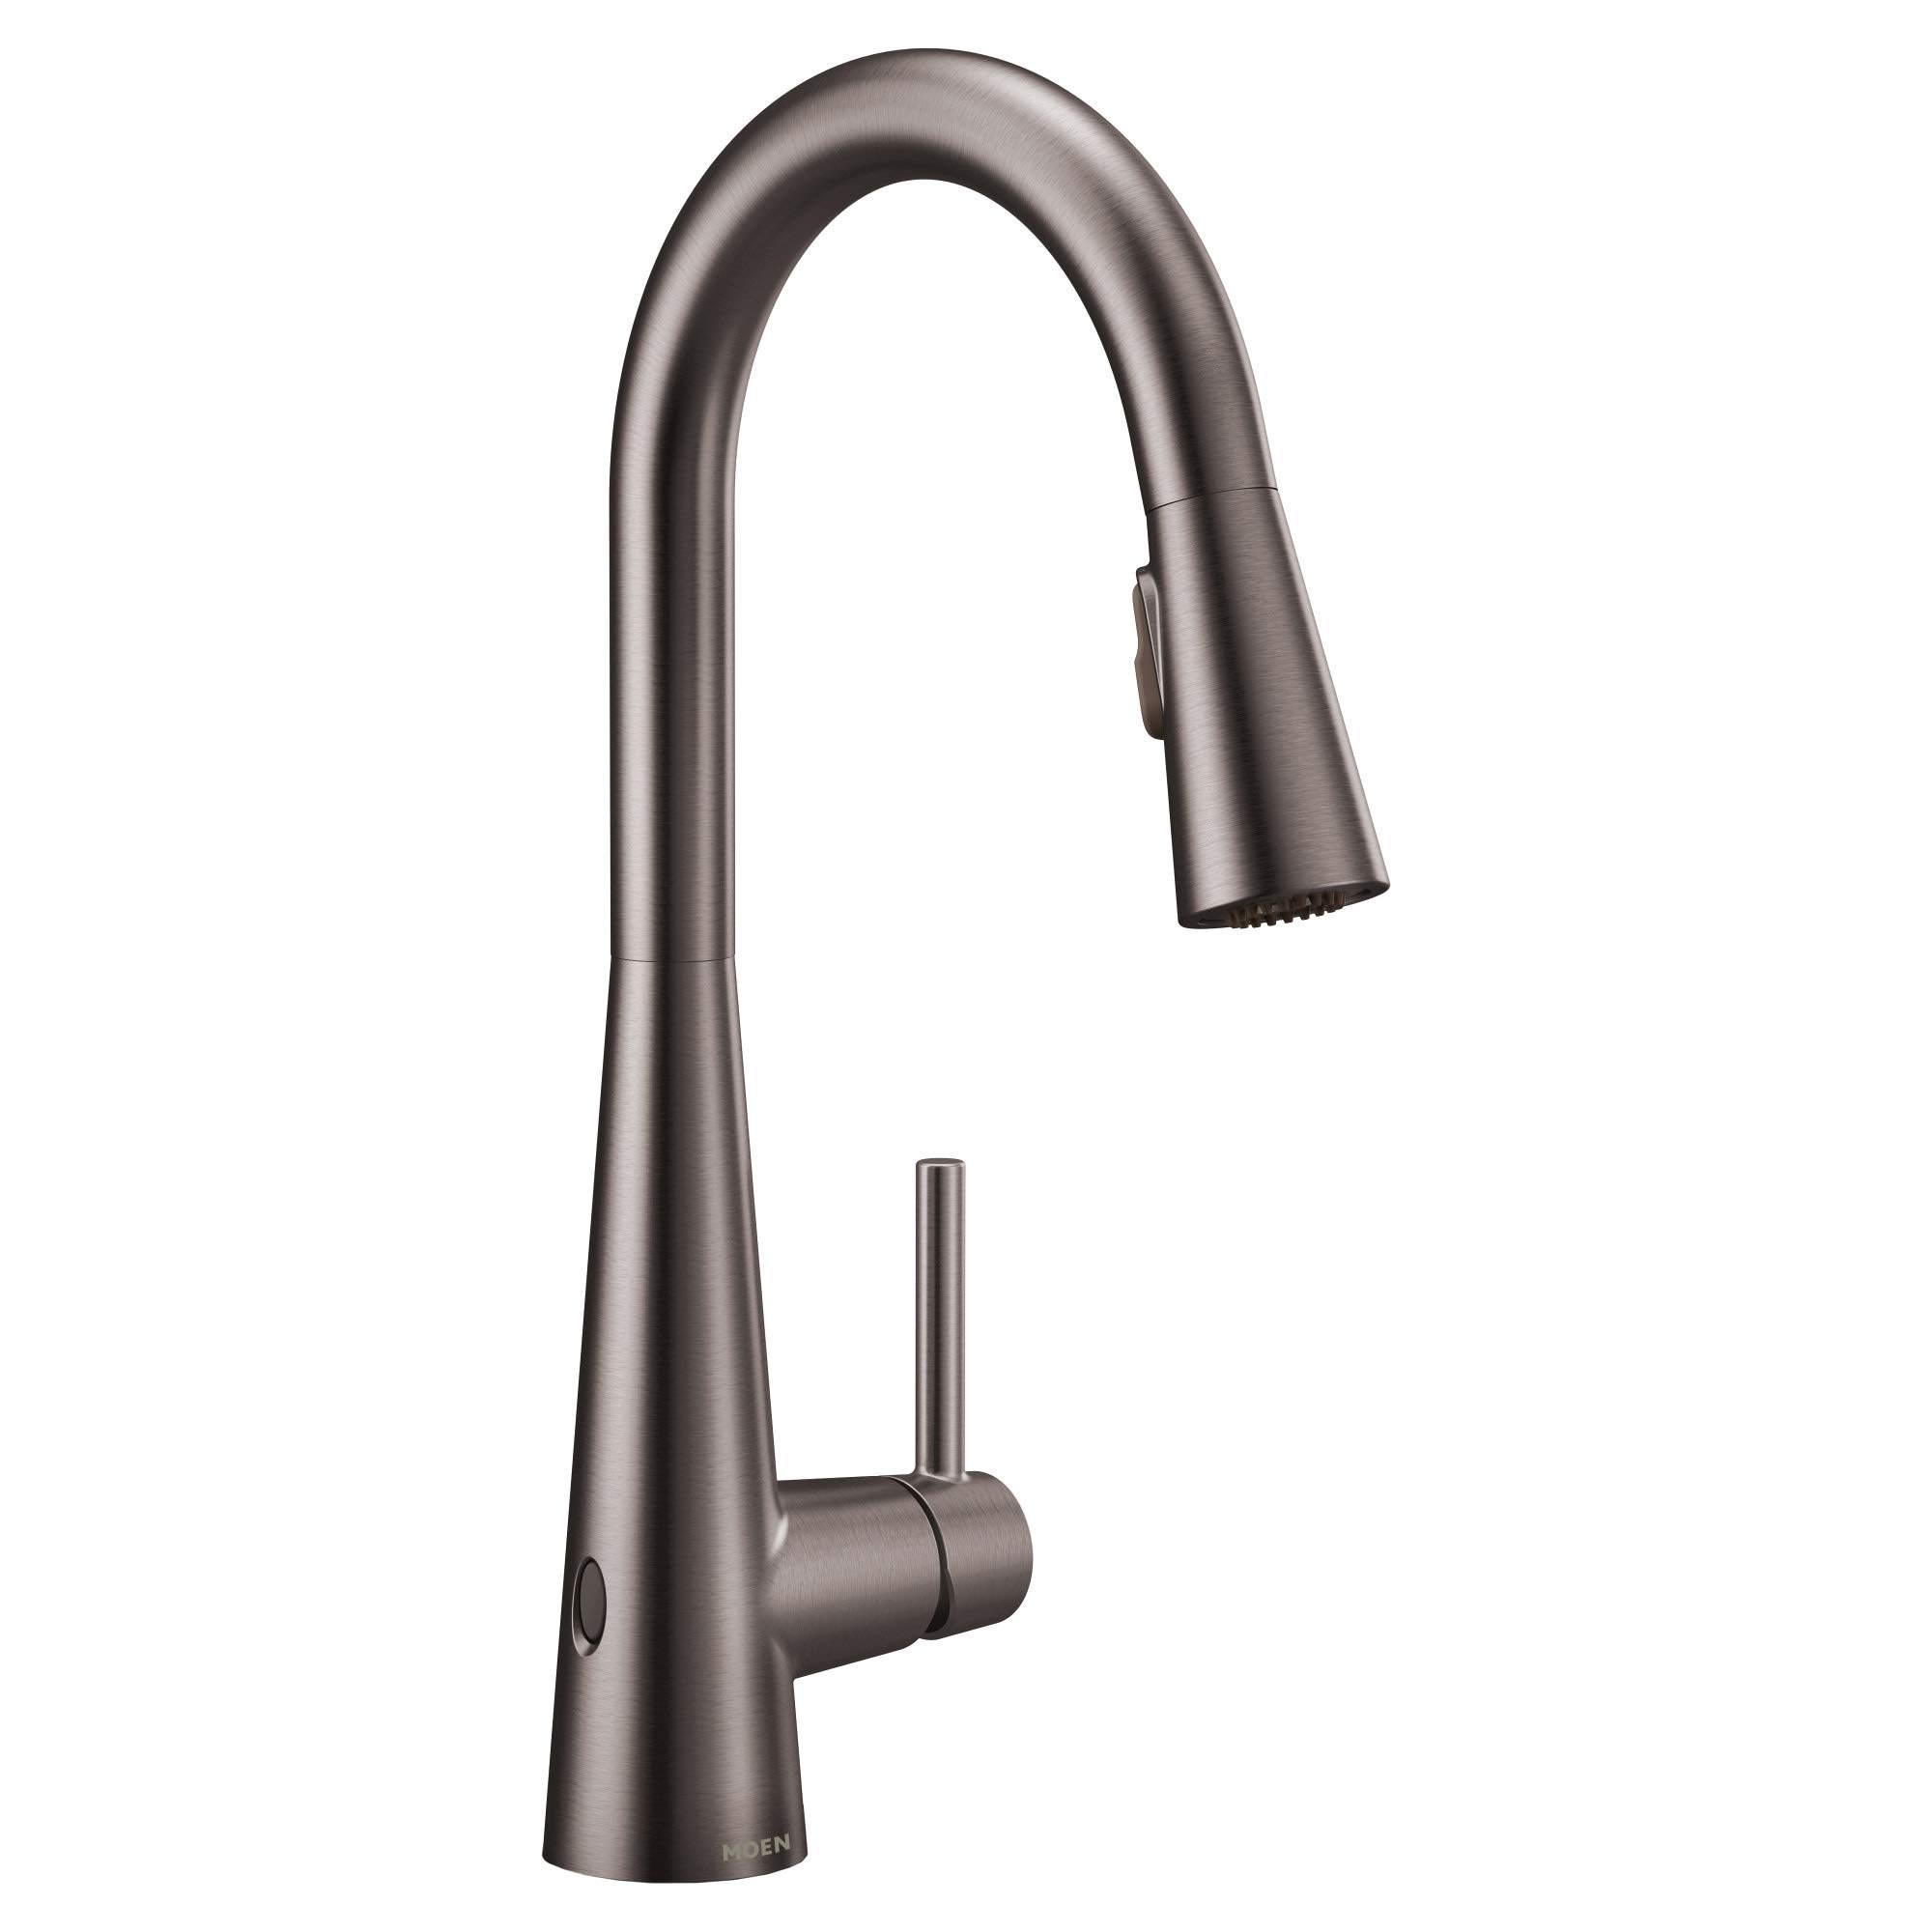 Moen 7864EWBLS Sleek Motionsense Wave Sensor Touchless One-Handle High Arc Pulldown Modern Kitchen Faucet Featuring Power Clean, Black Stainless